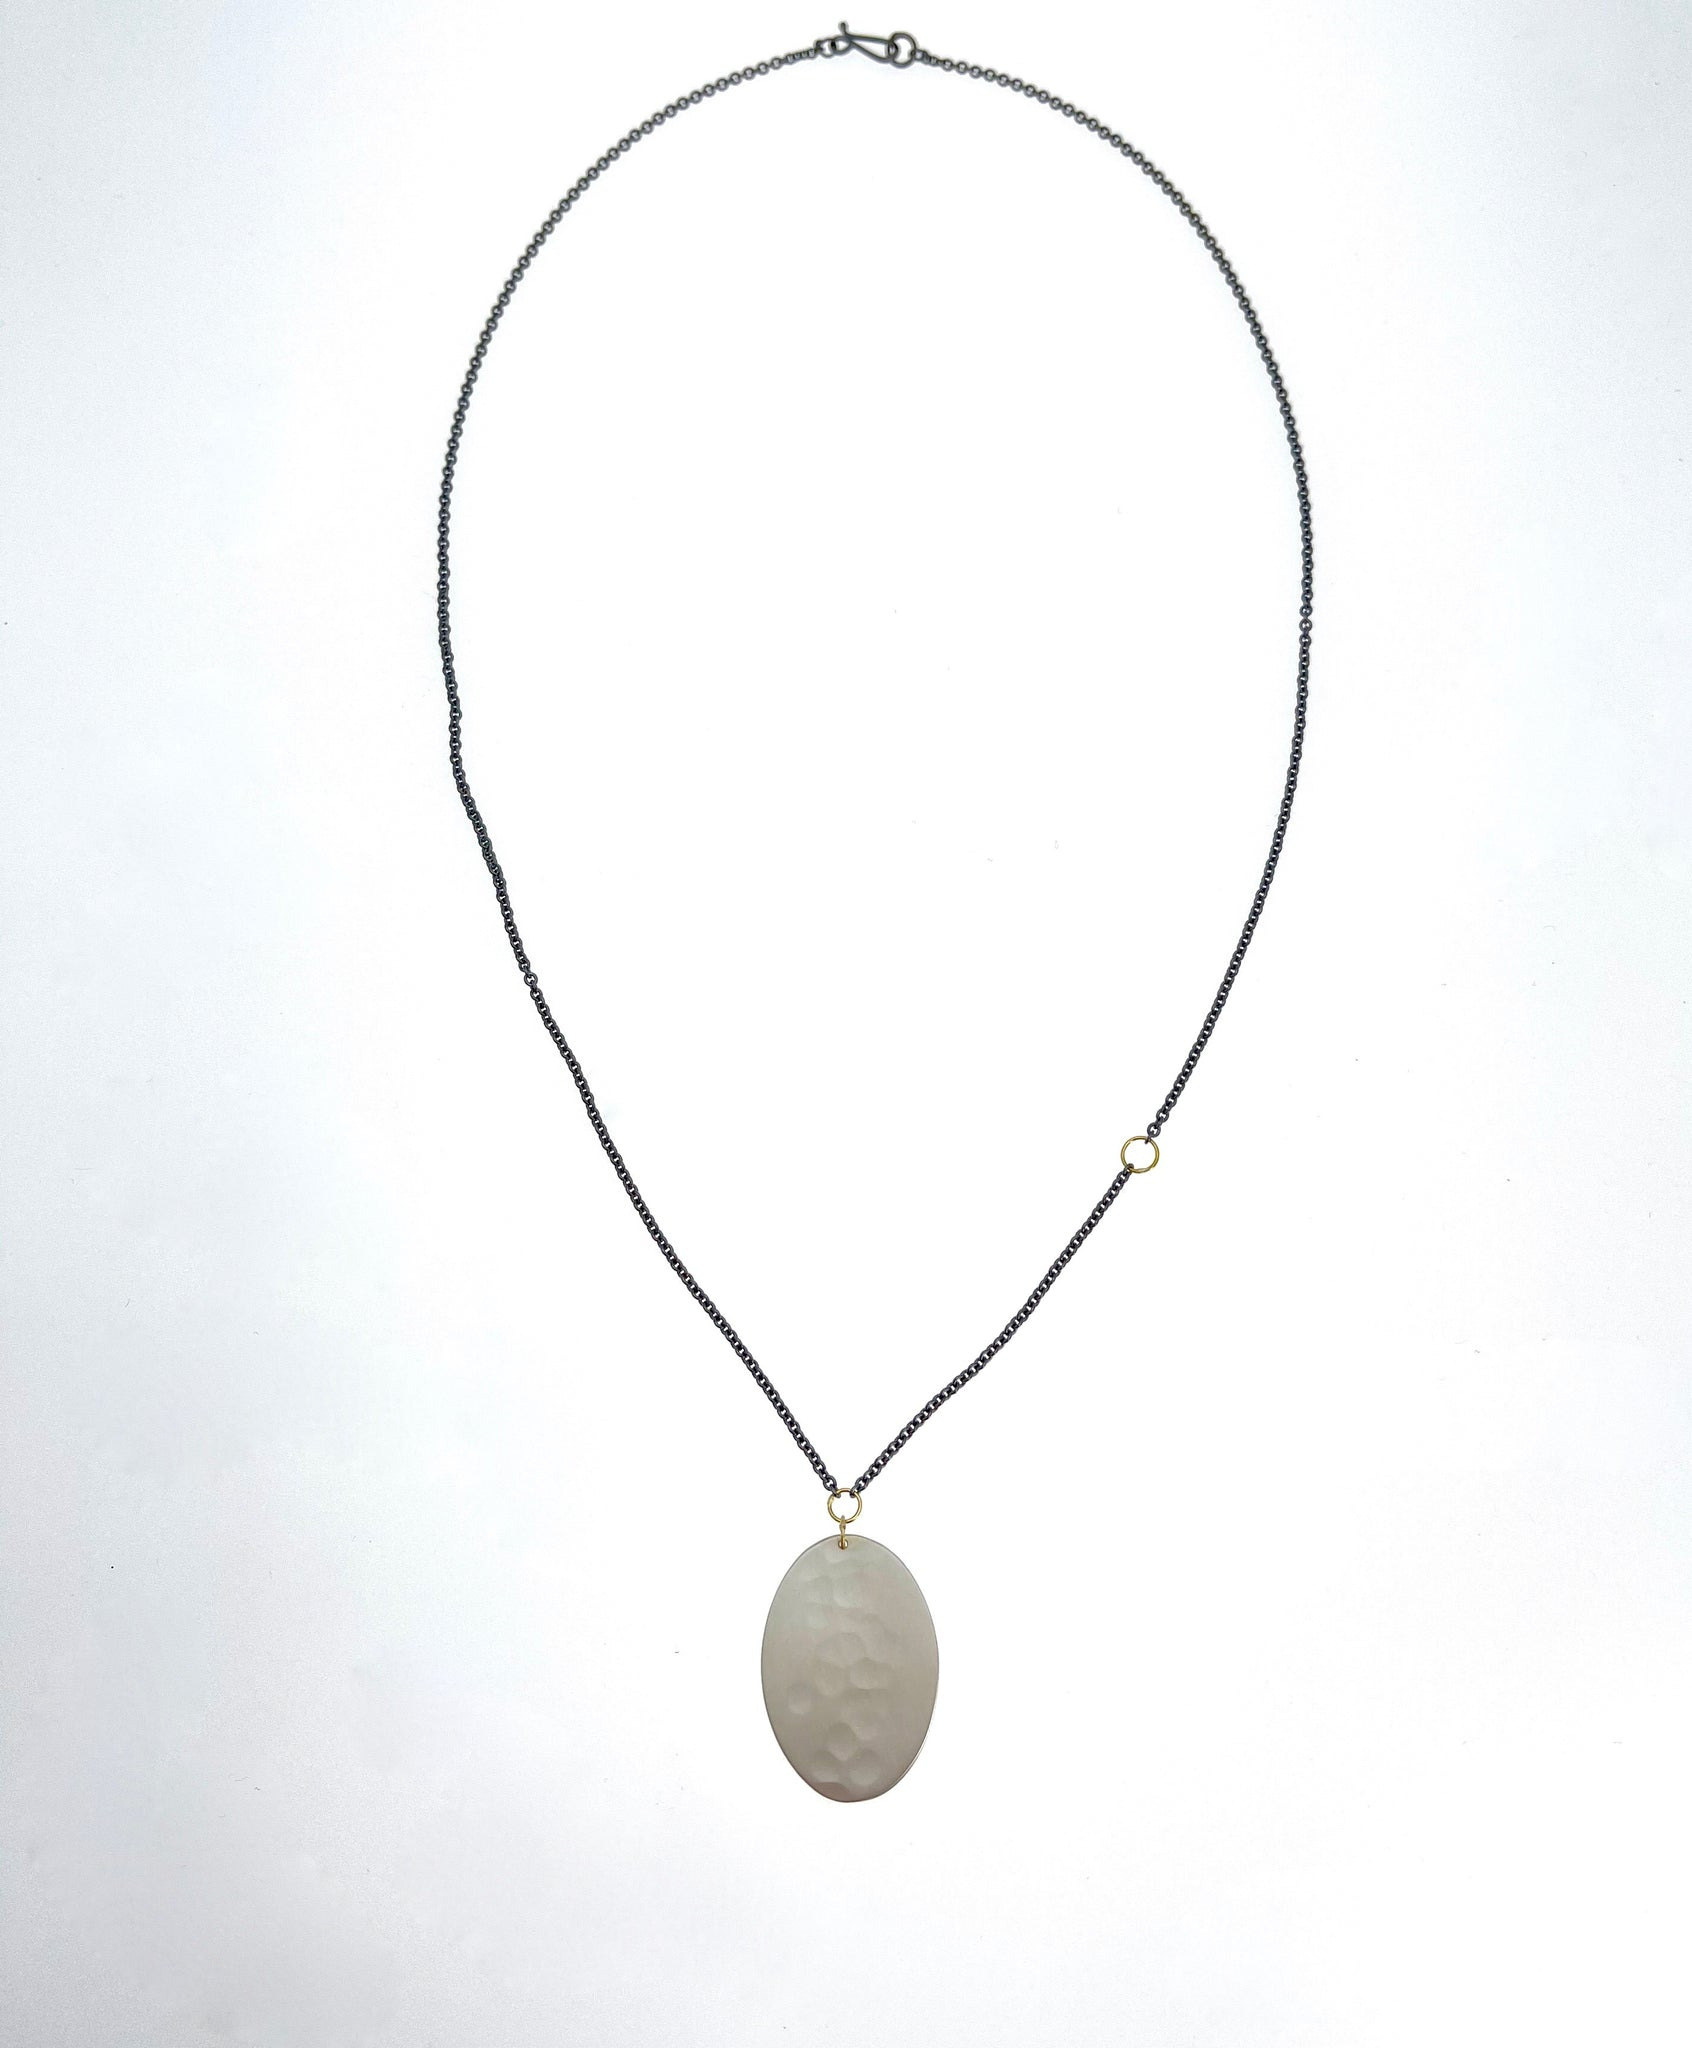 Sarah McGuire Oval Amulet Necklace